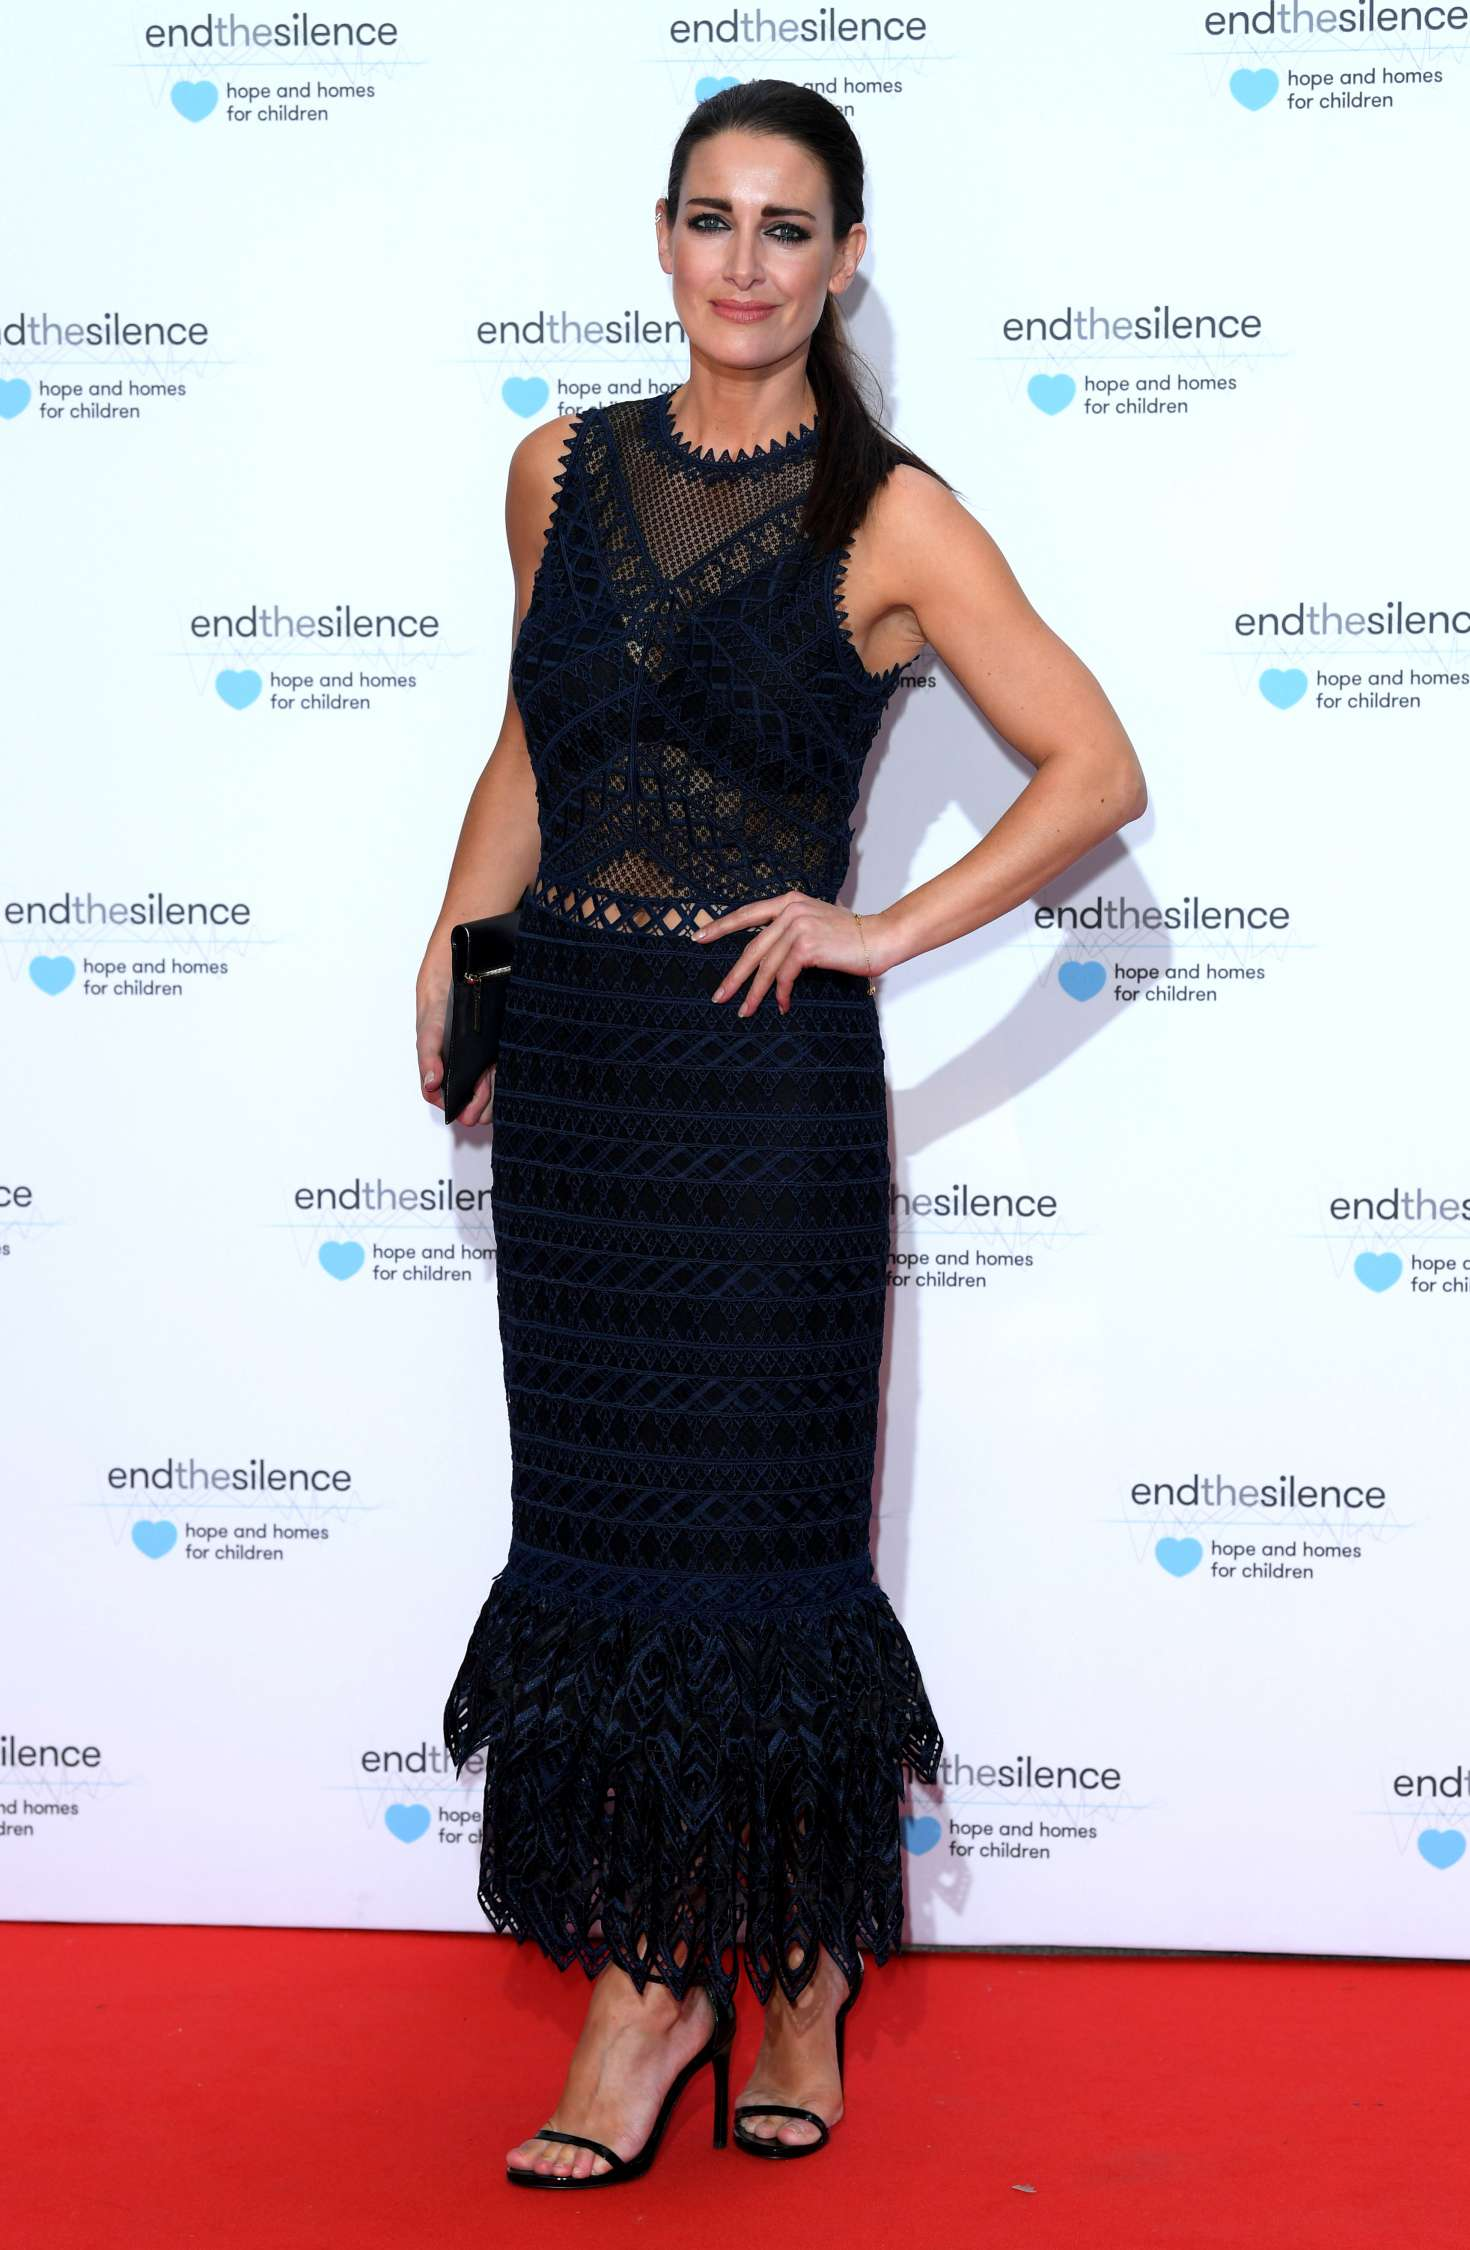 Kirsty Gallacher 2017 : Kirsty Gallacher: End the Silence Charity Fundraiser -03